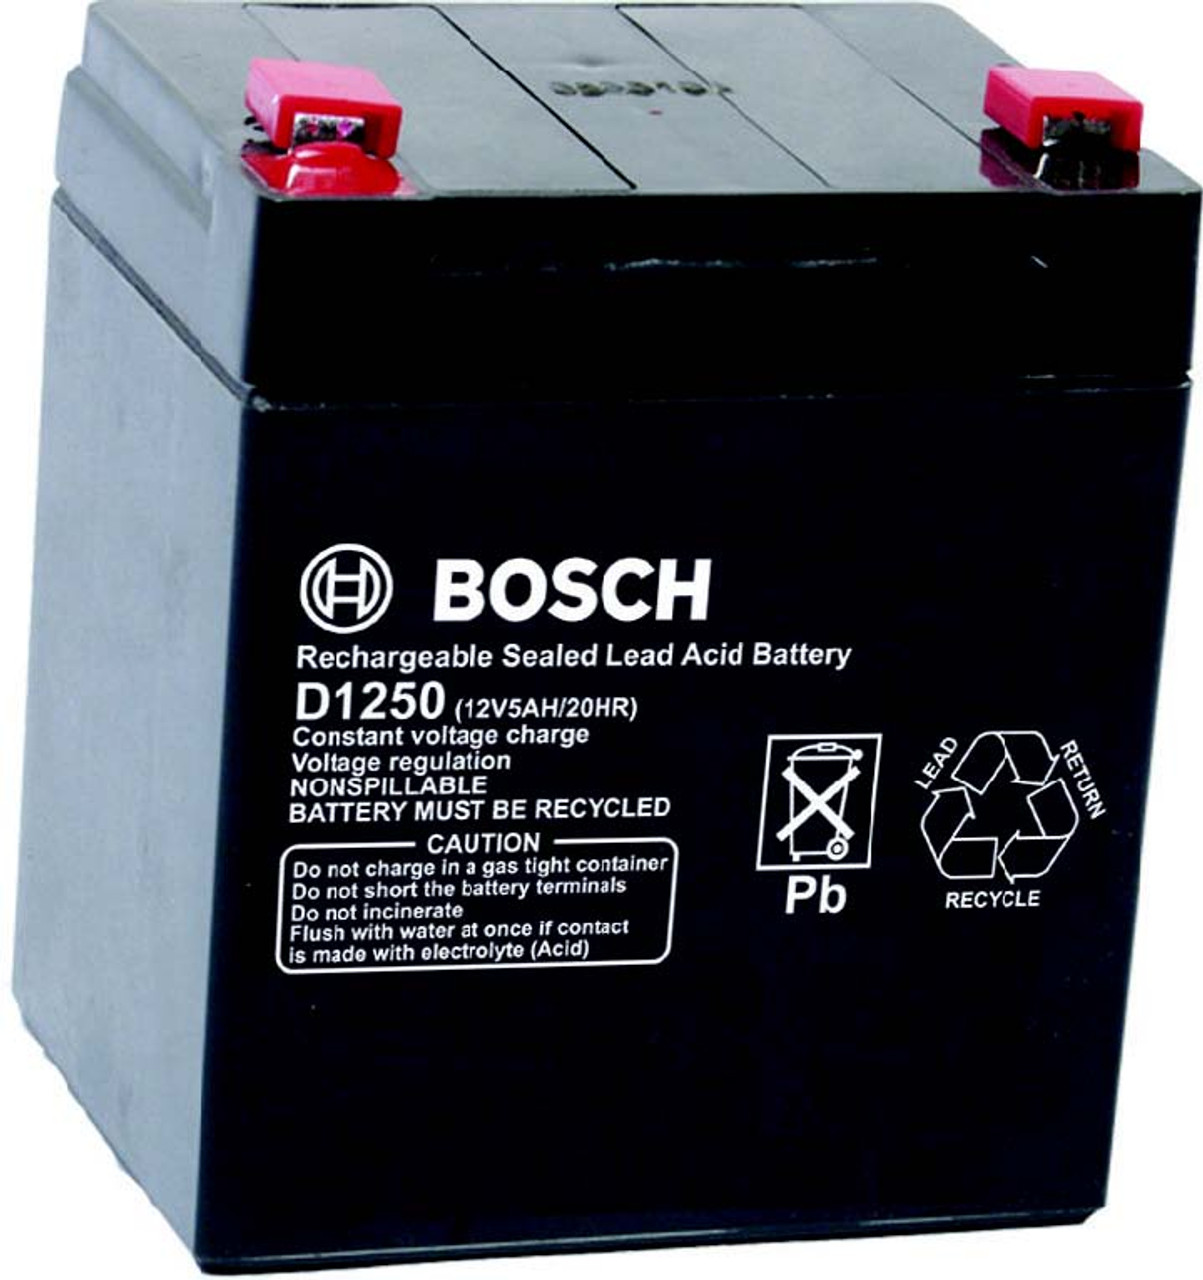 12v 5ah Battery >> Bosch D1250 12v 5ah Battery